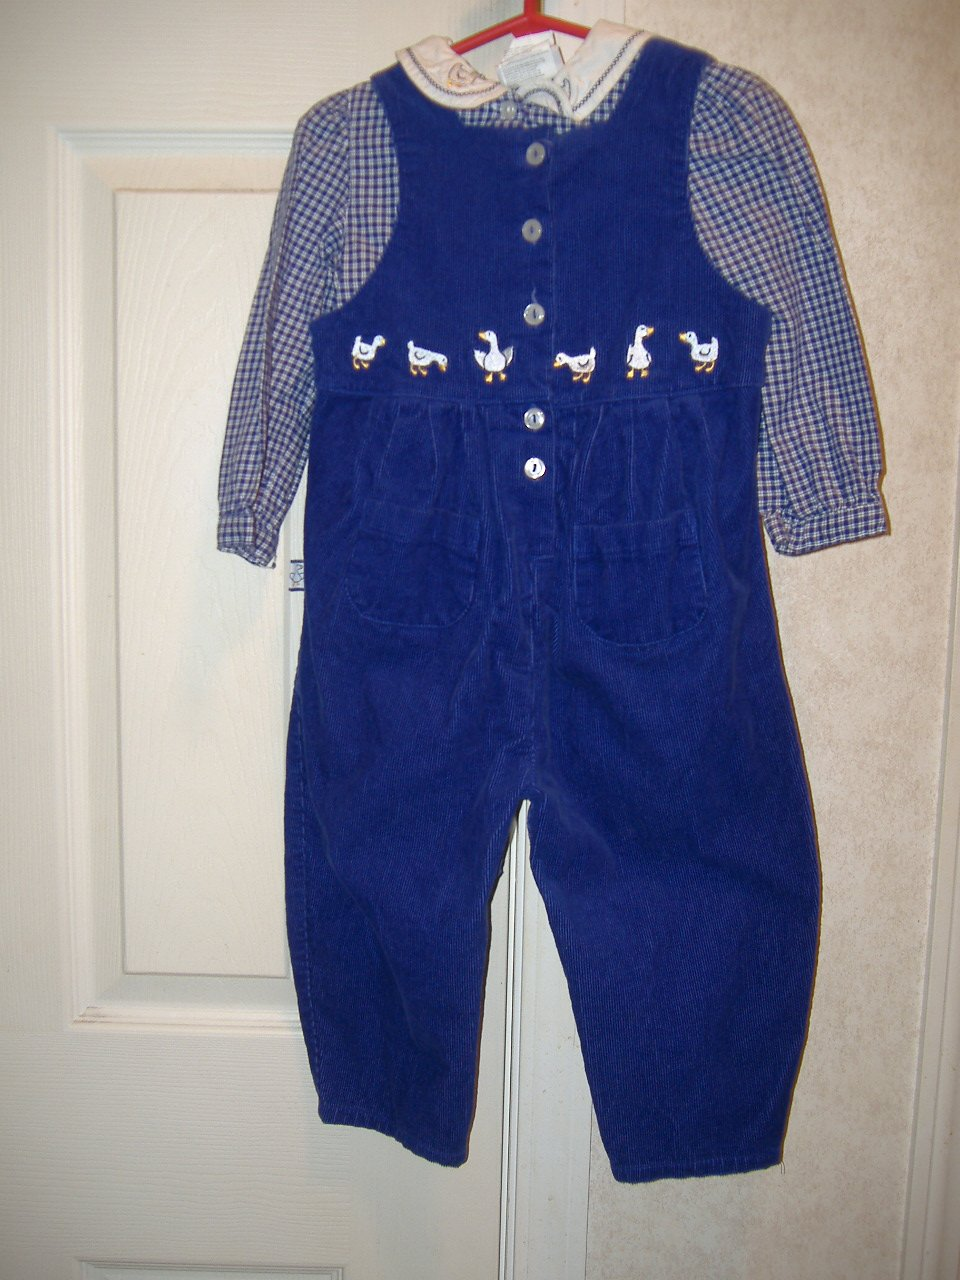 2 Piece Girl Toddler Set By Buster Brown   Size 24 Months